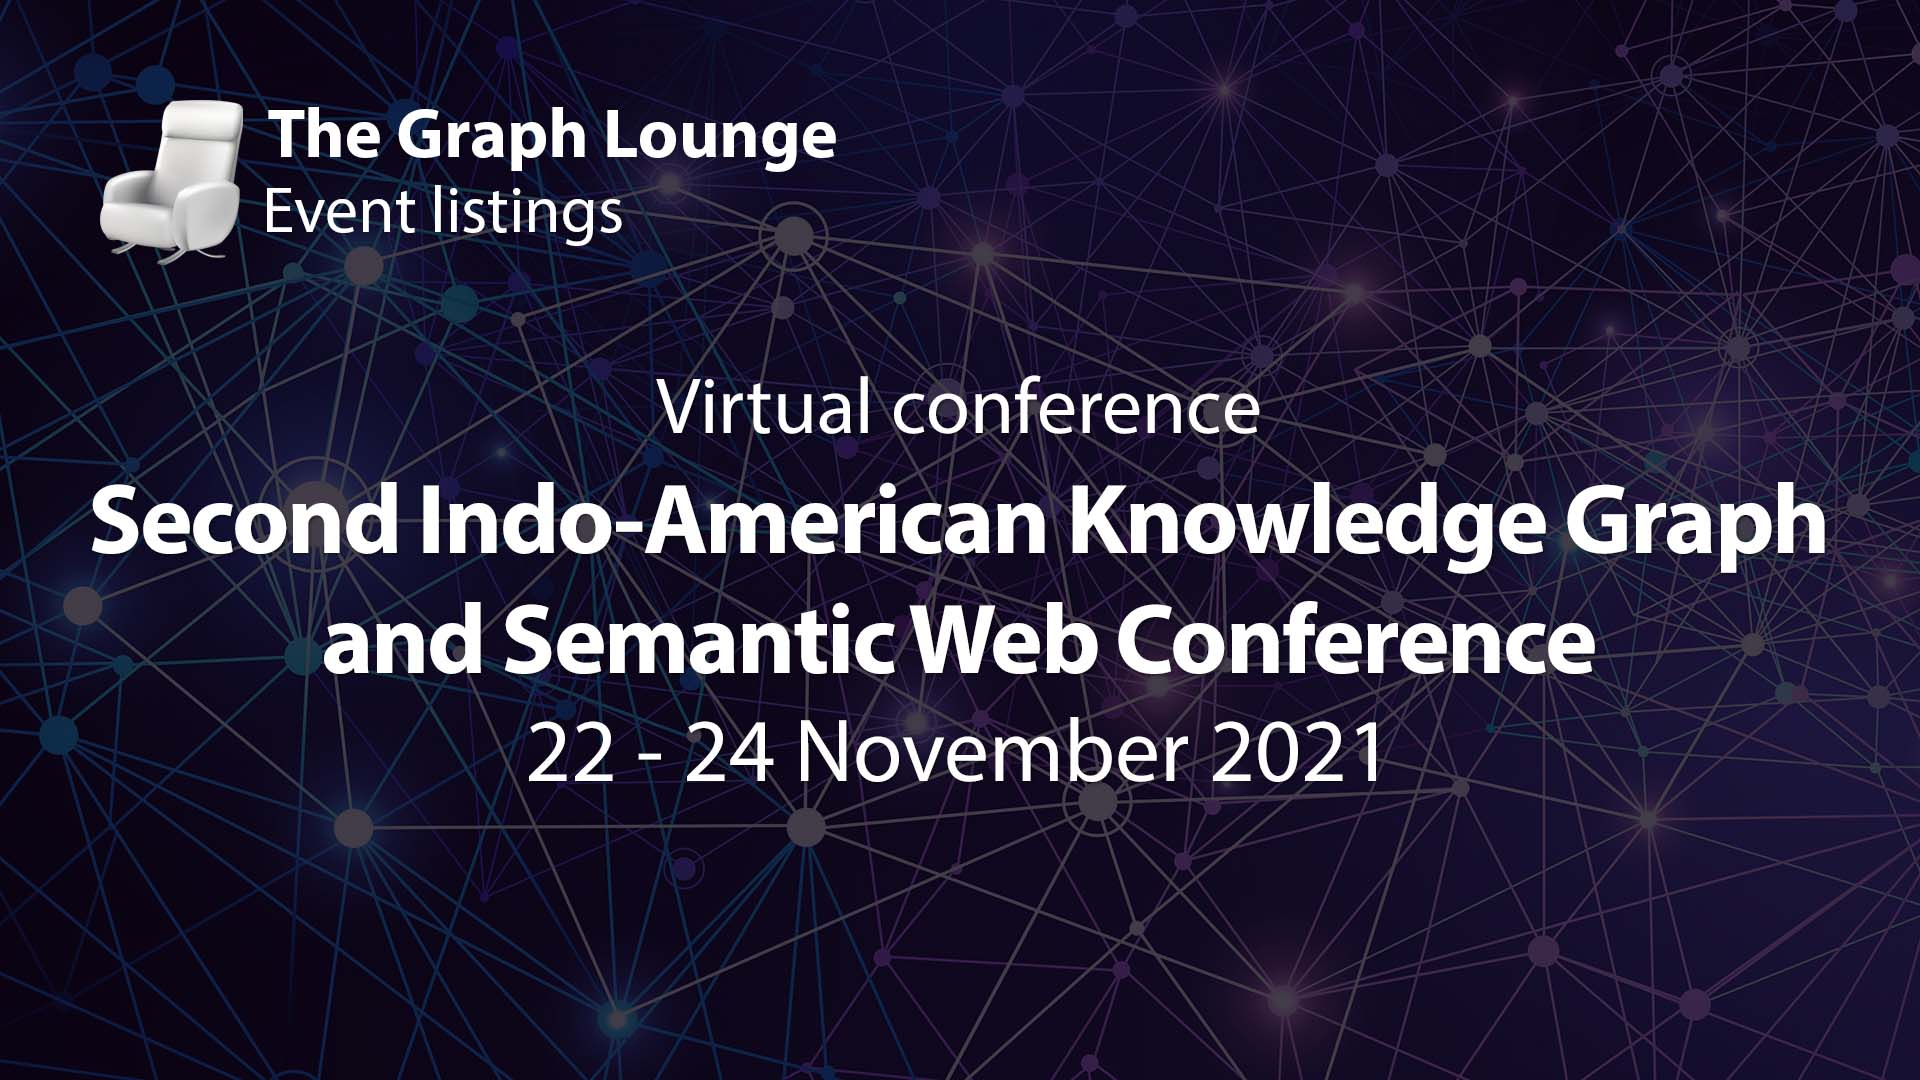 Second Indo-American Knowledge Graph and Semantic Web Conference